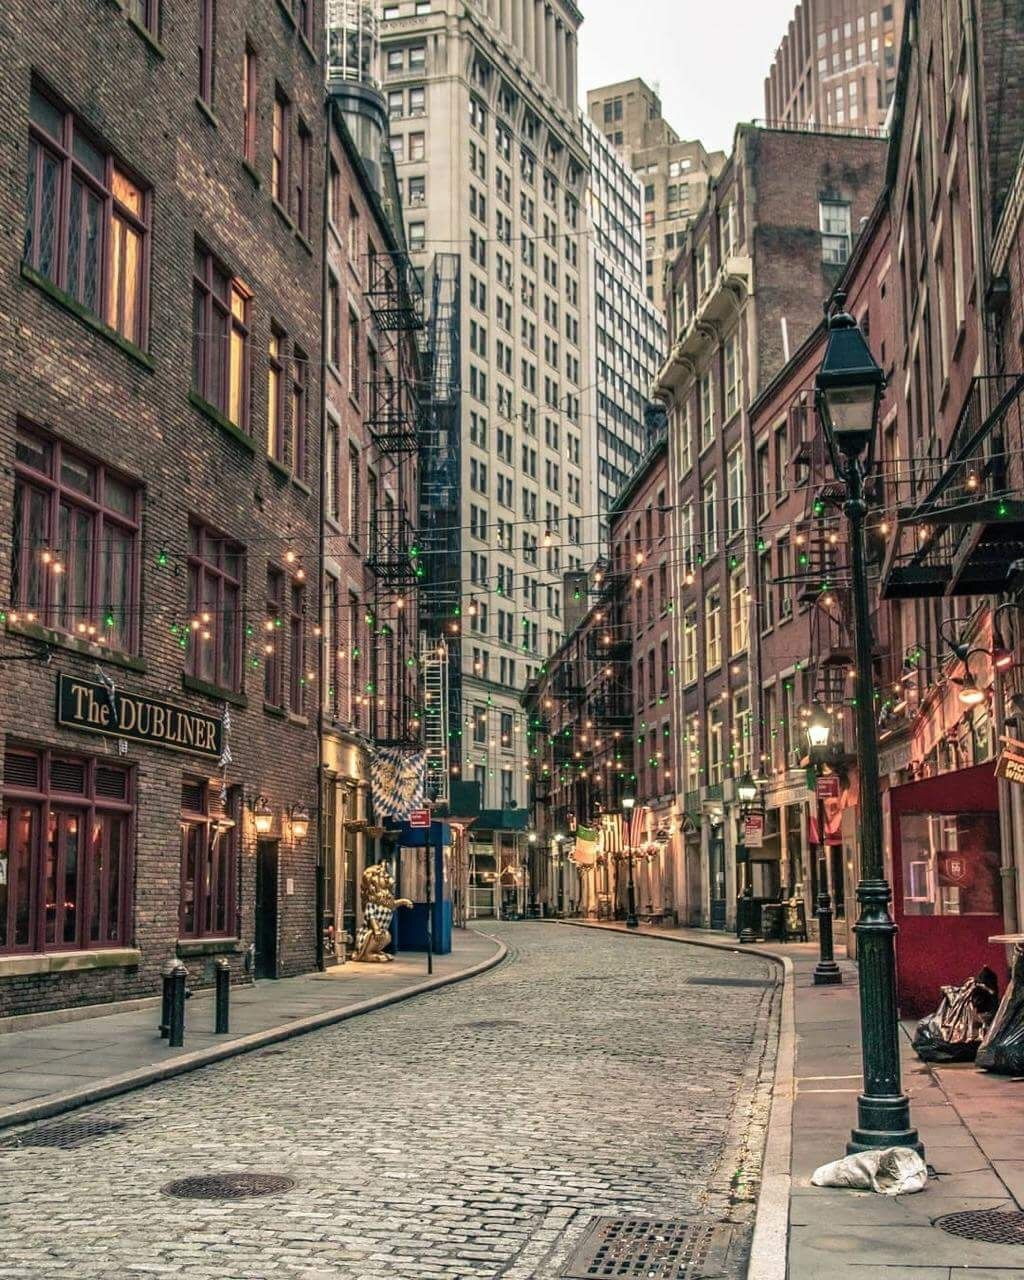 Stone a Street, Financial District, New York. #autumninnewyork